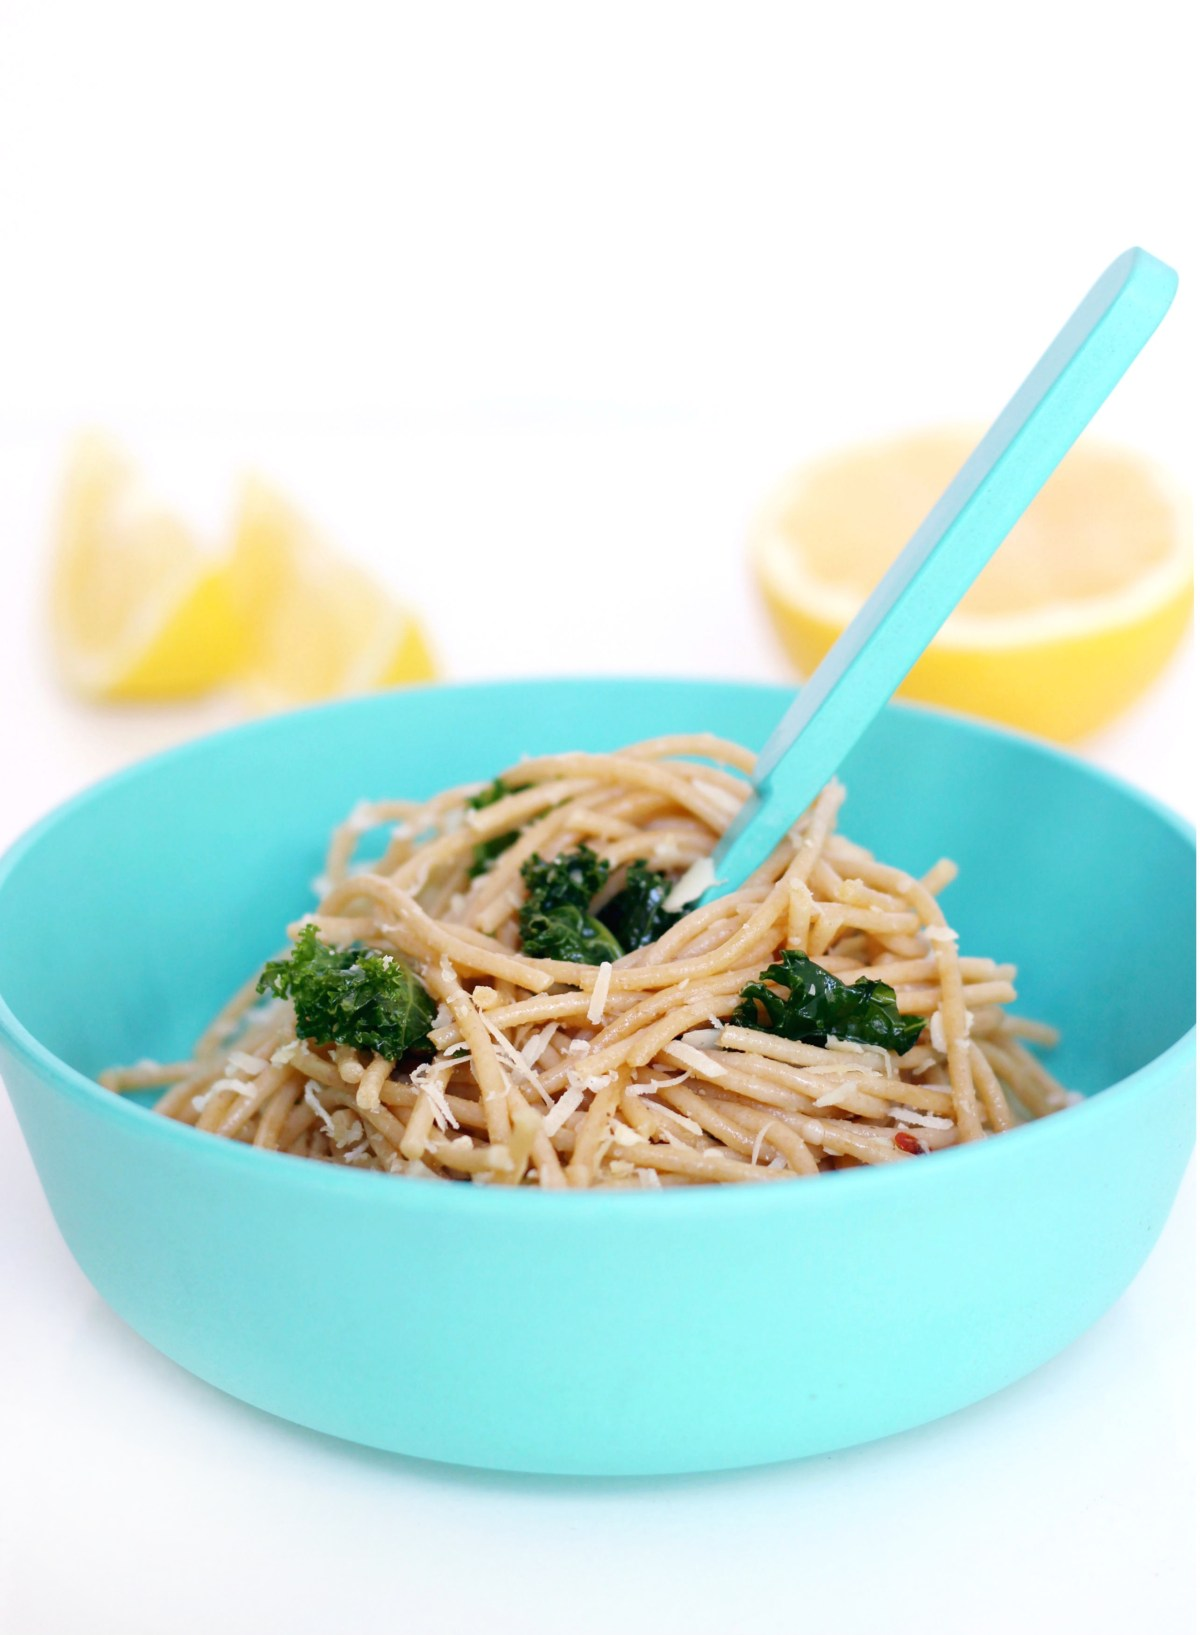 Lemon Kale Pasta with Garlic and Parmesan